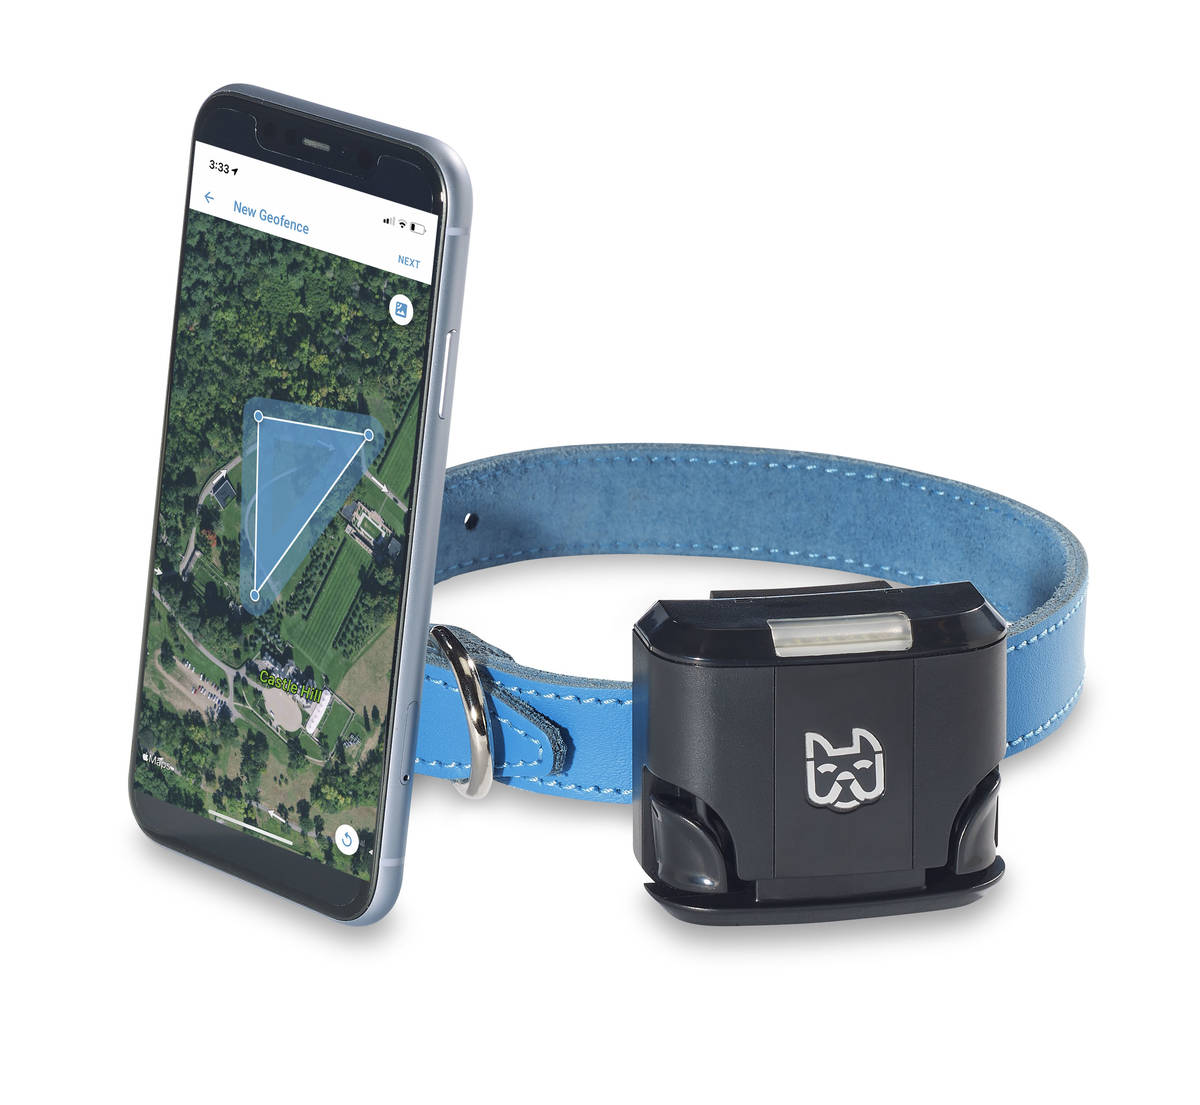 The Wagz Freedom Smart Dog Collar allows you to set boundaries with an app. (Wagz)